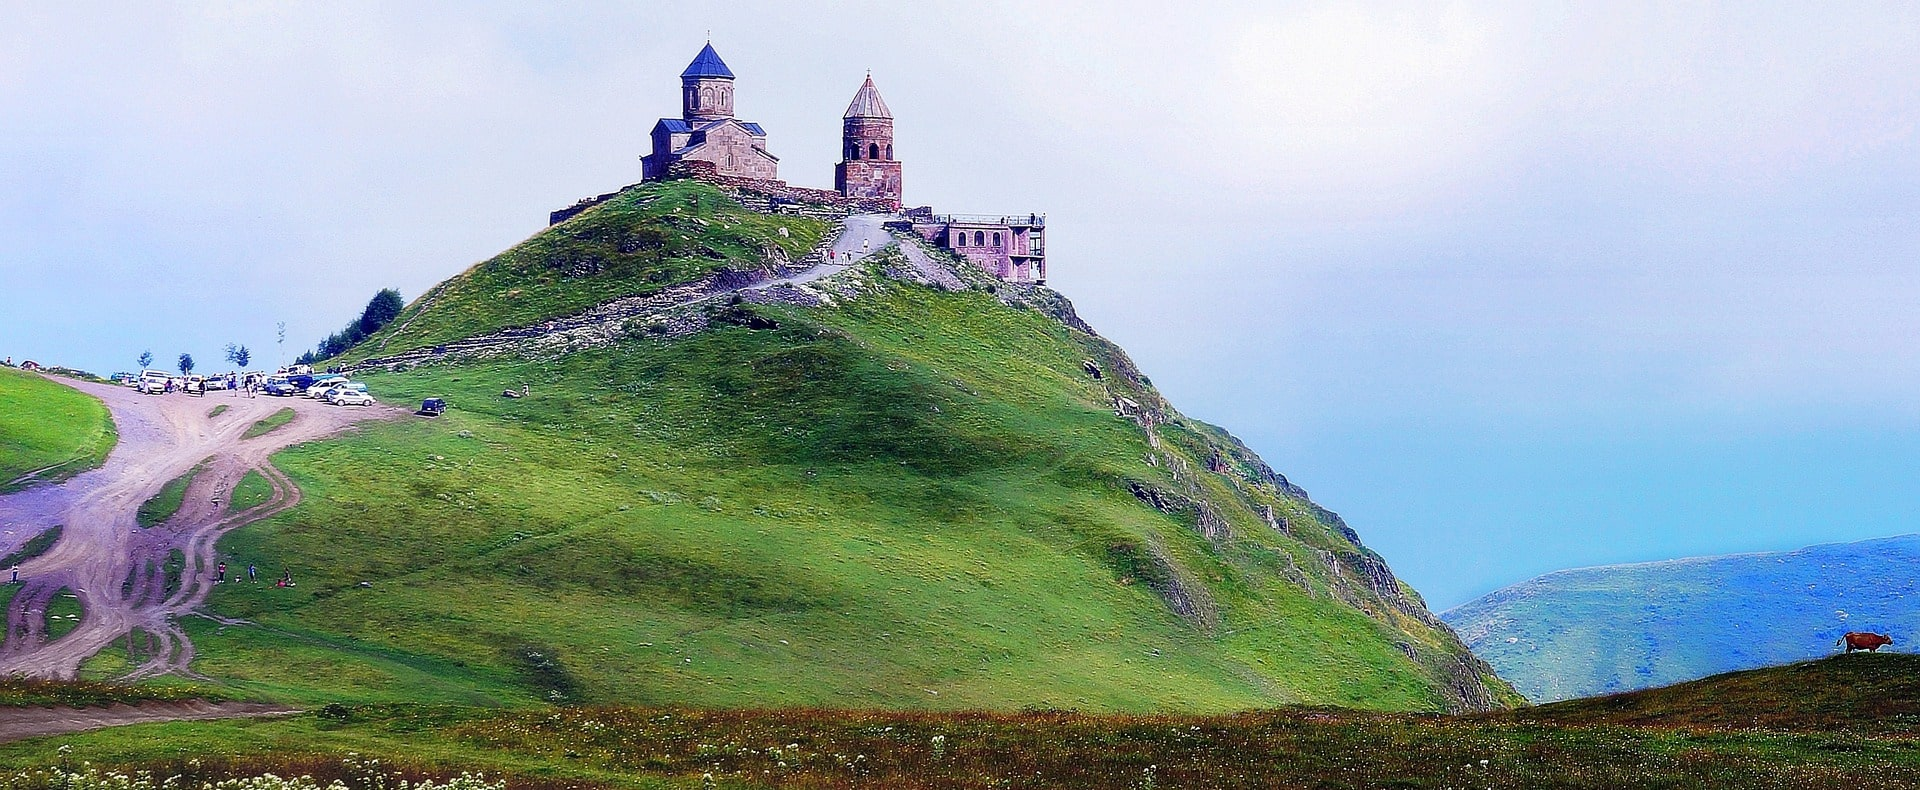 Kazbegi National Park, Georgia